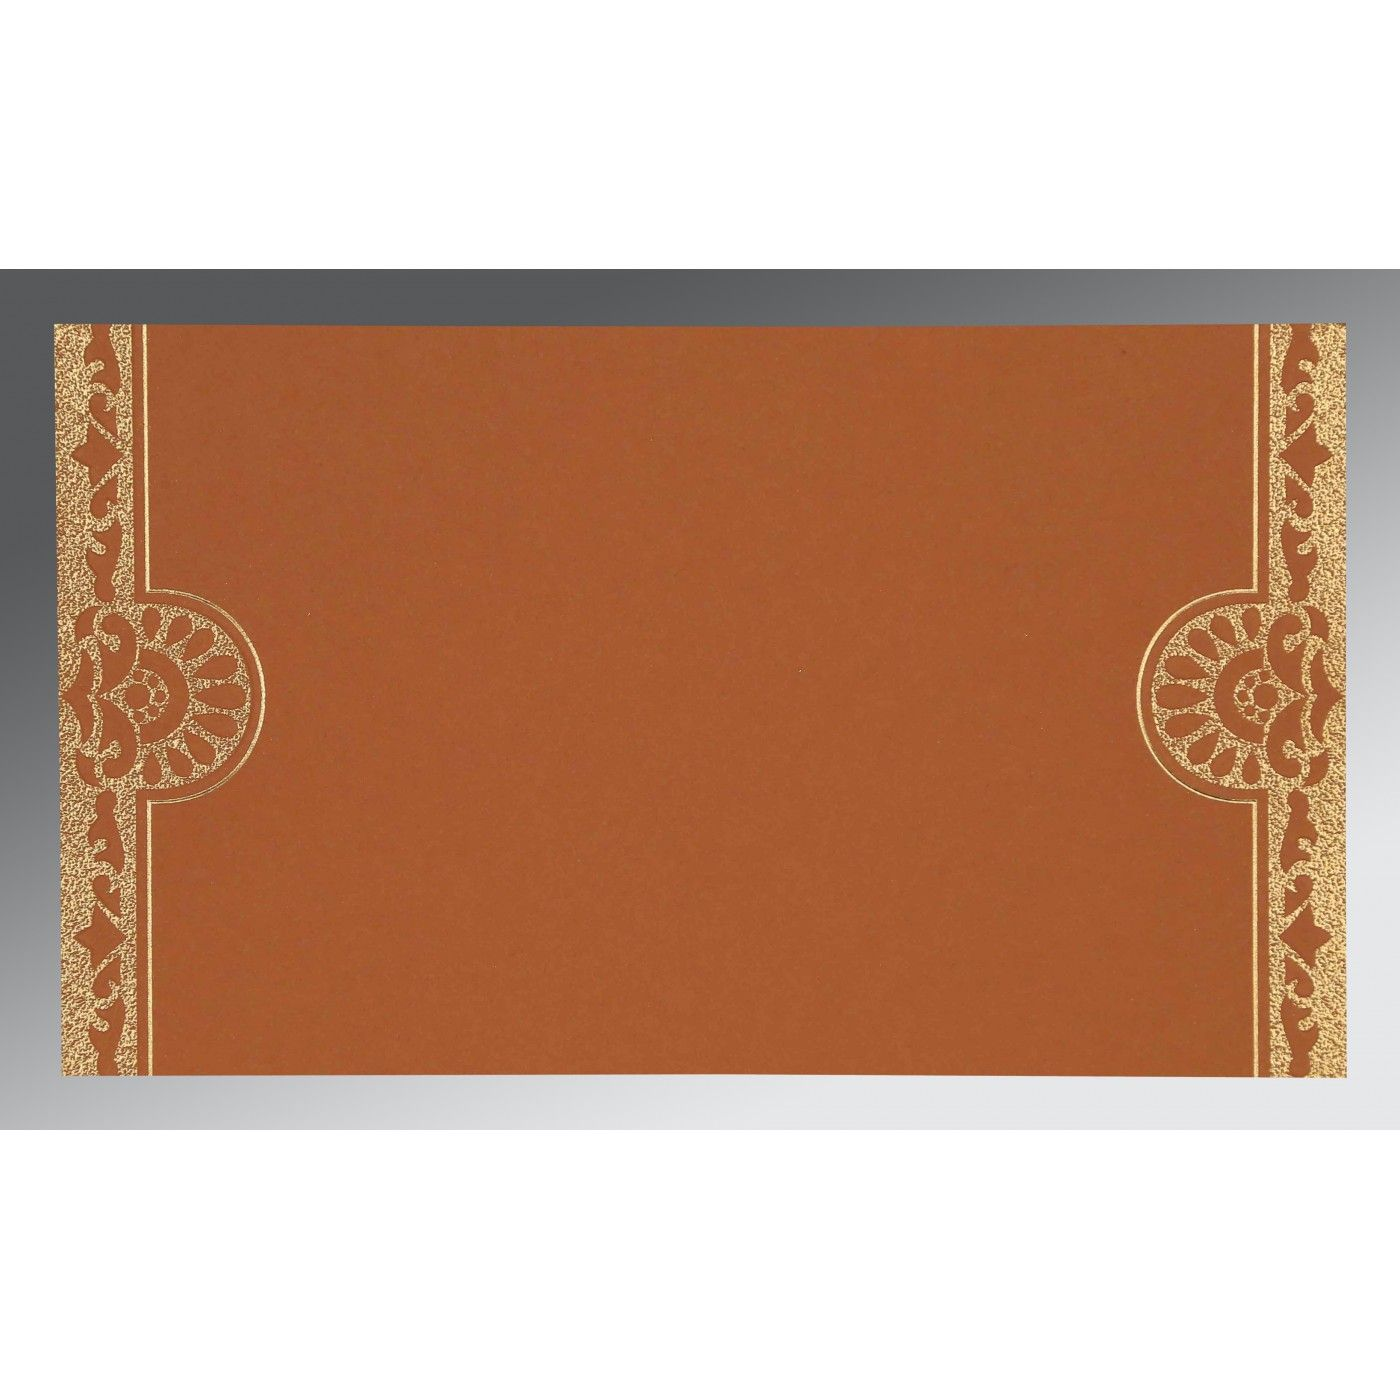 OFF-WHITE SHIMMERY FLORAL THEMED - SCREEN PRINTED WEDDING CARD : CG-8227L - IndianWeddingCards